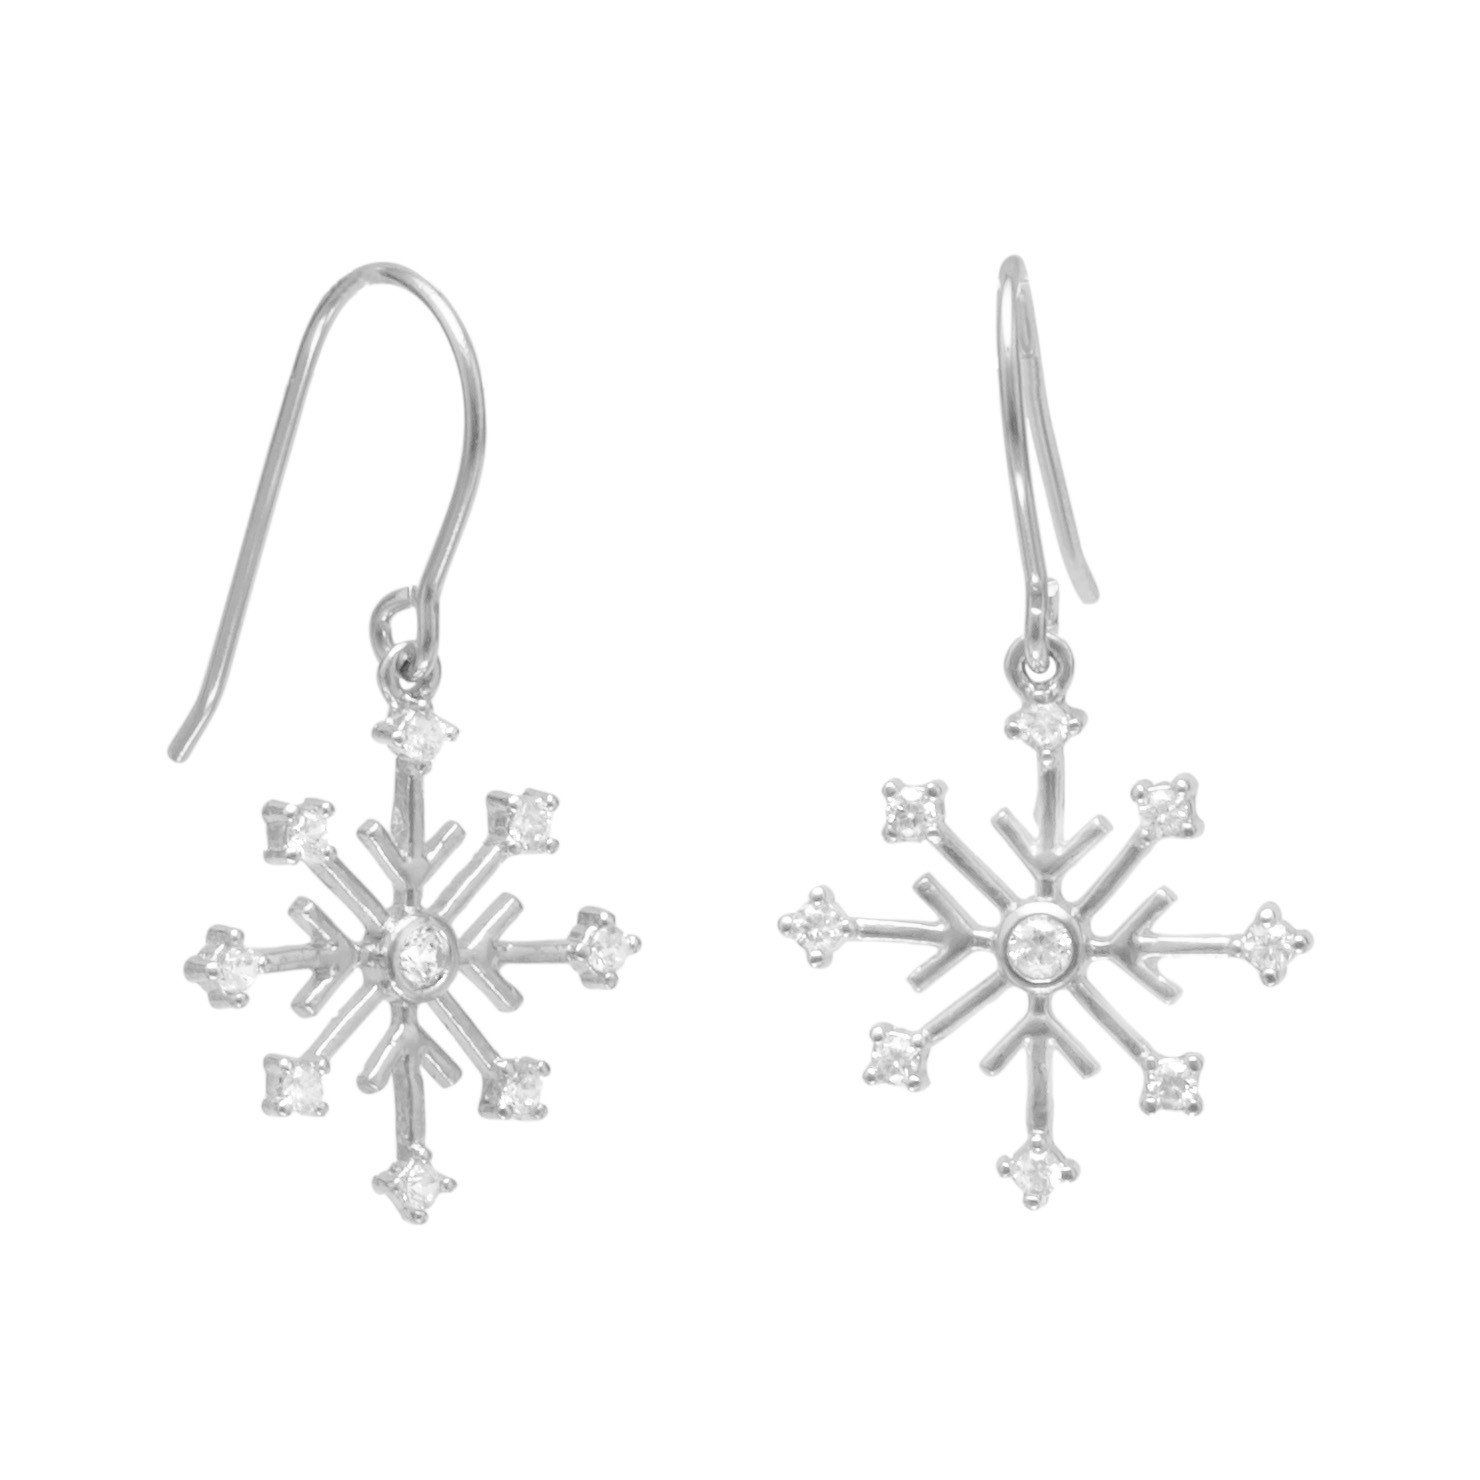 17 X 14 MM ONE STERLING SILVER SNOWFLAKE CHARM PENDANT FOR CHRISTMAS